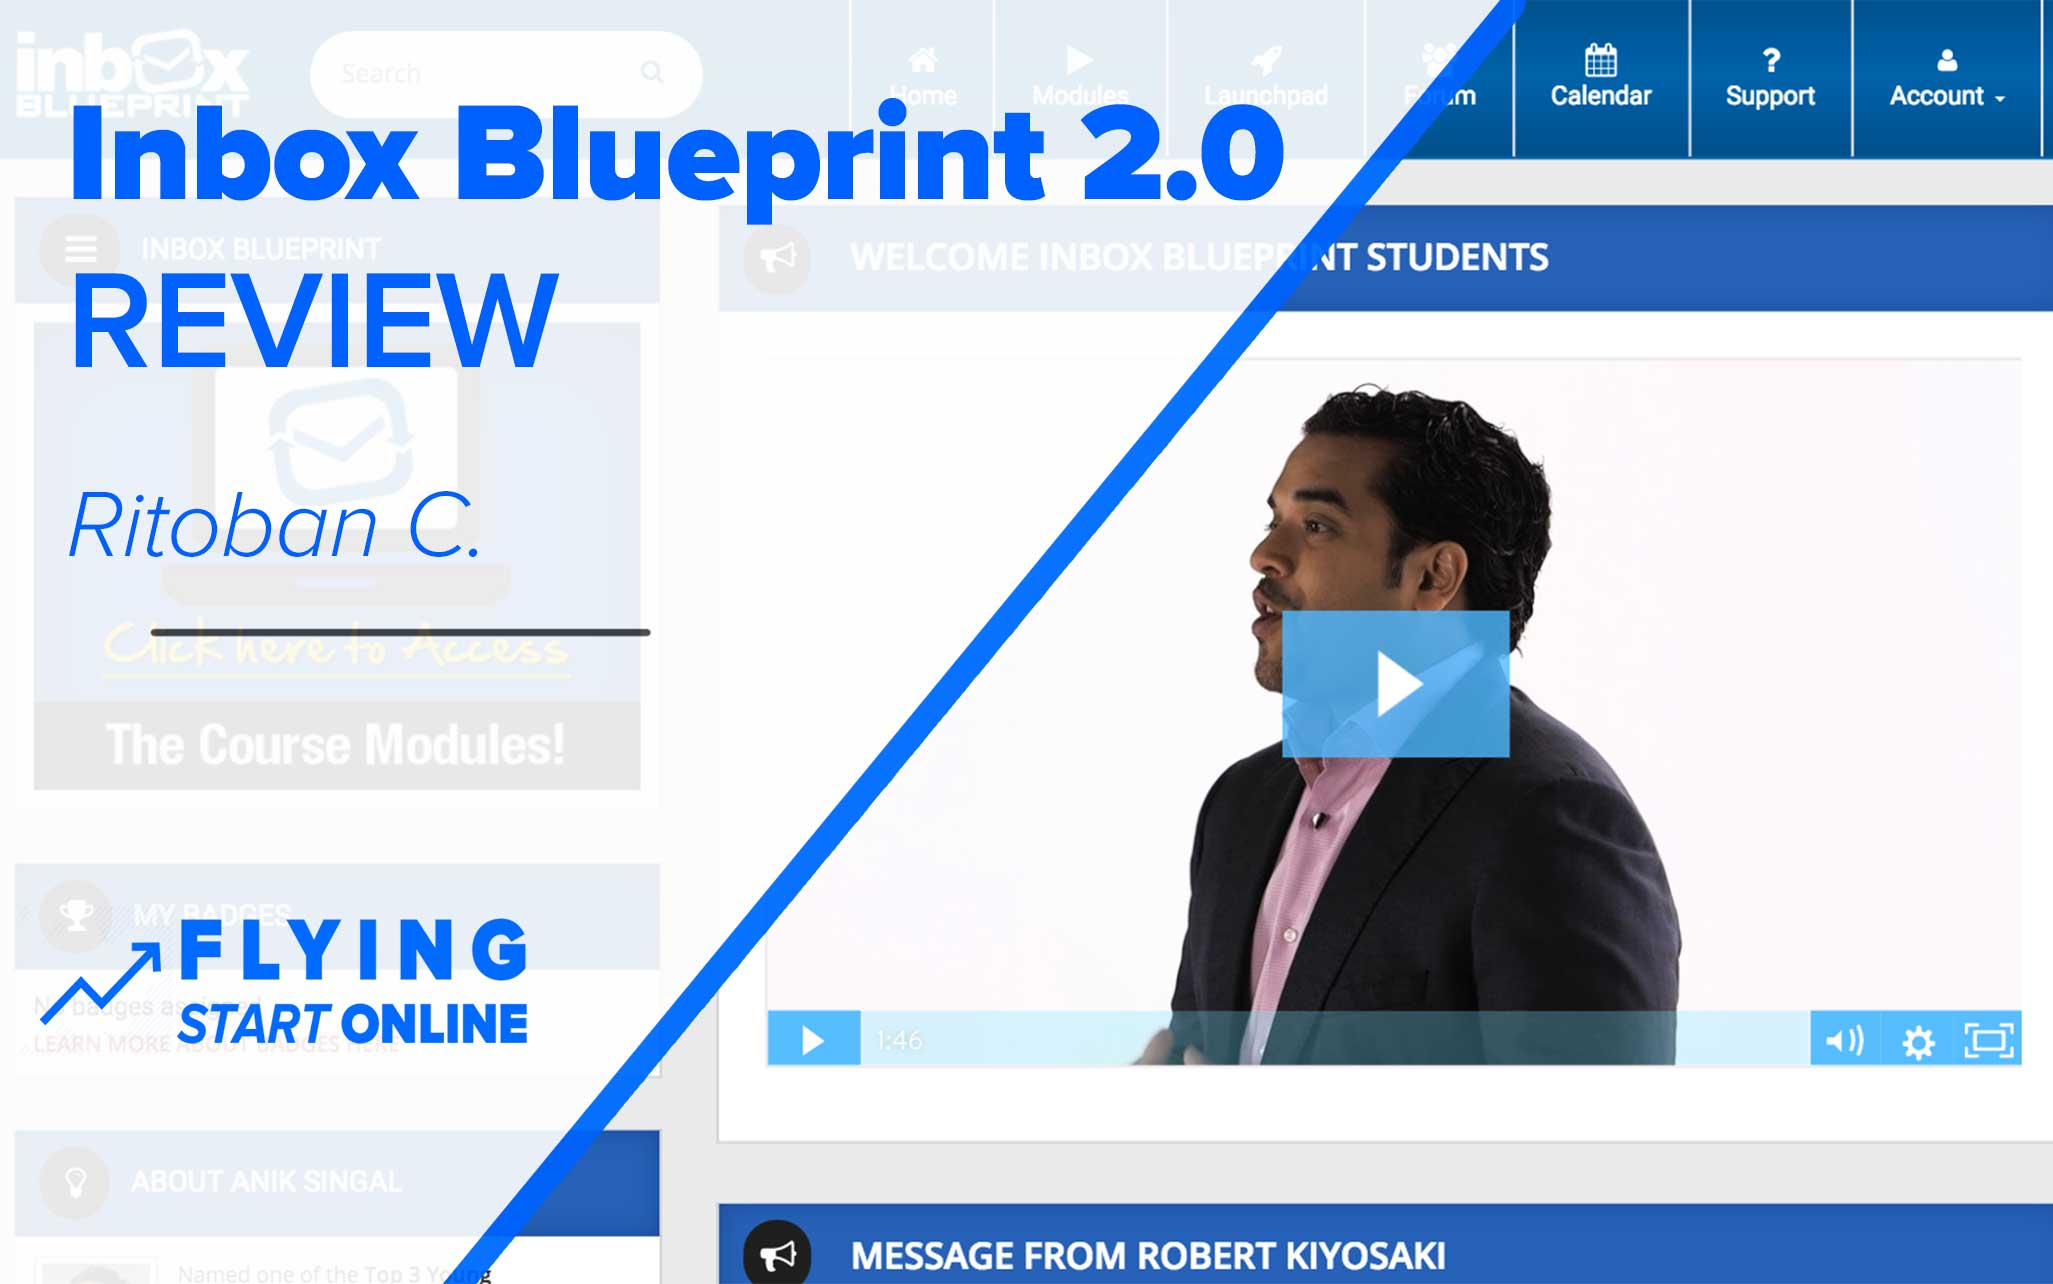 Inbox blueprint 20 review launchpad demo bonus by ritoban c malvernweather Gallery